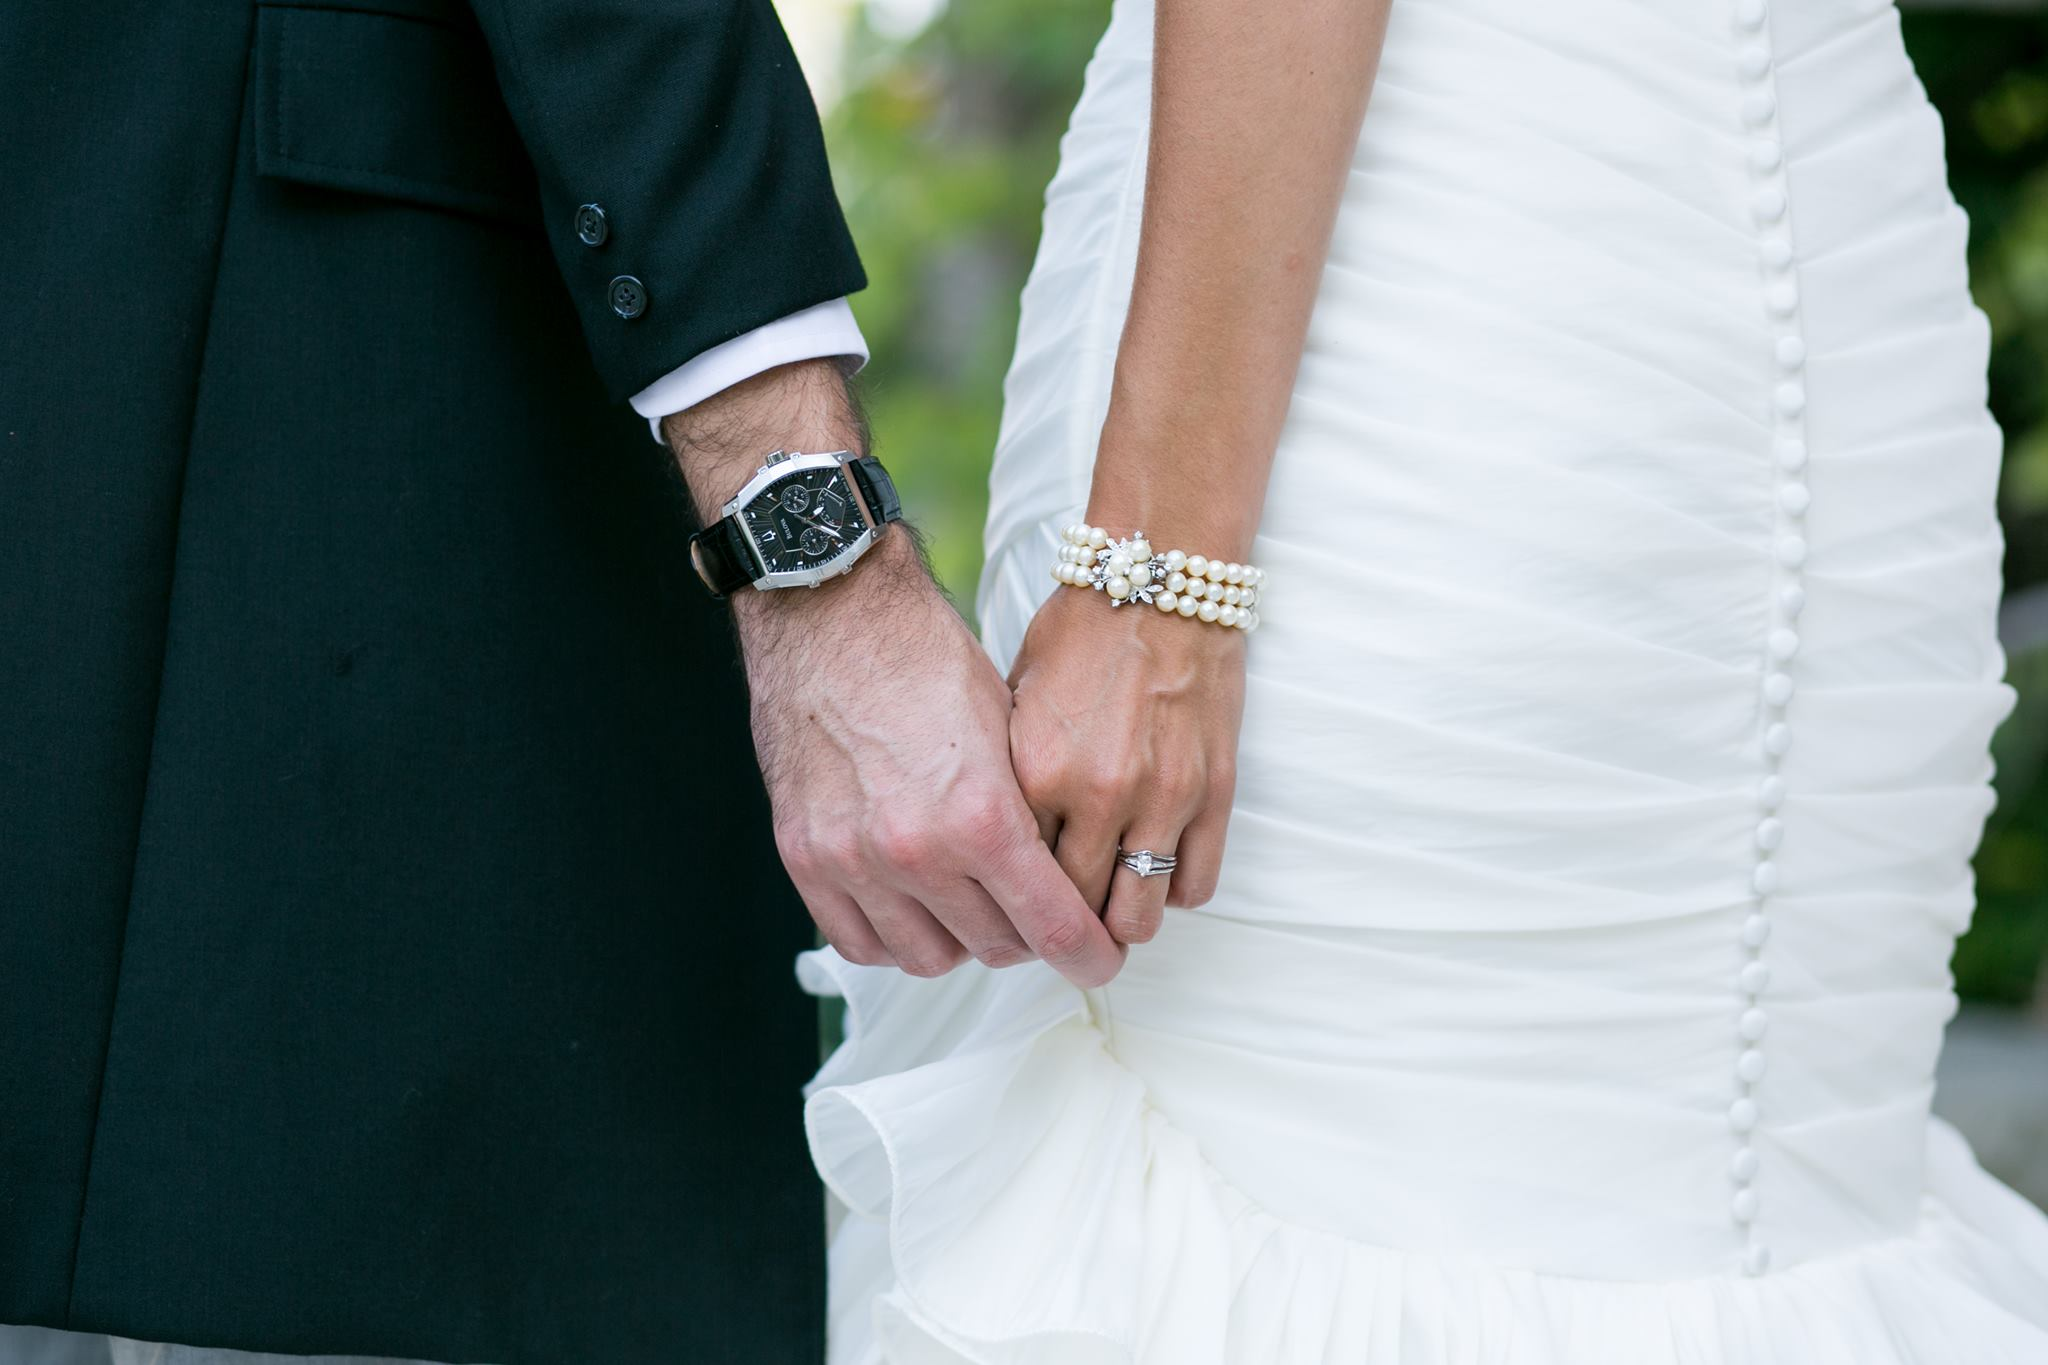 Watch Bracelet Bride Groom Gift Wedding Photo By Karen D Photography Of Santa Barbara